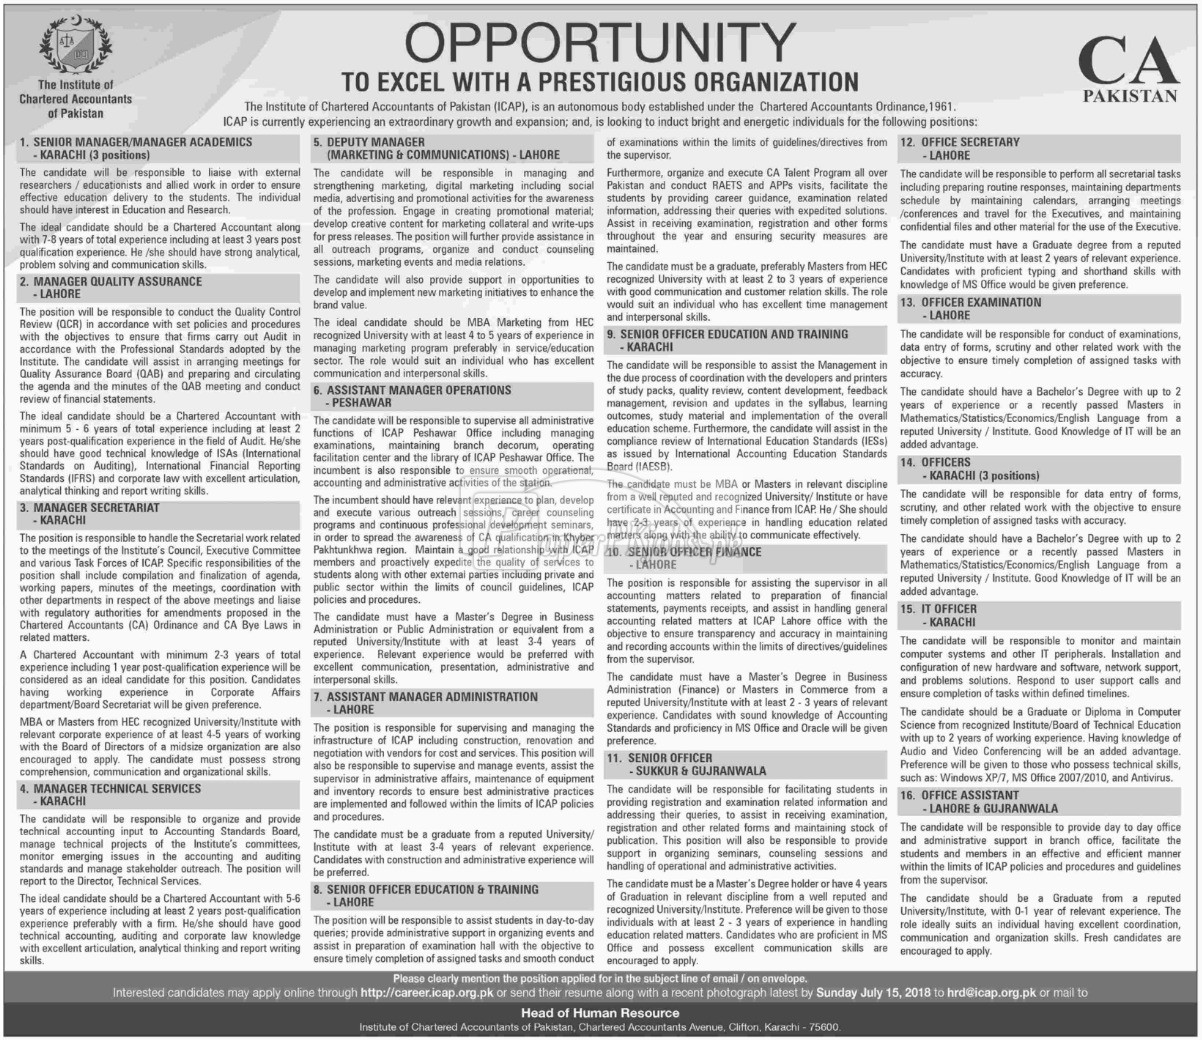 The Institute of Chartered Accountants of Pakistan ICAP Jobs 2018